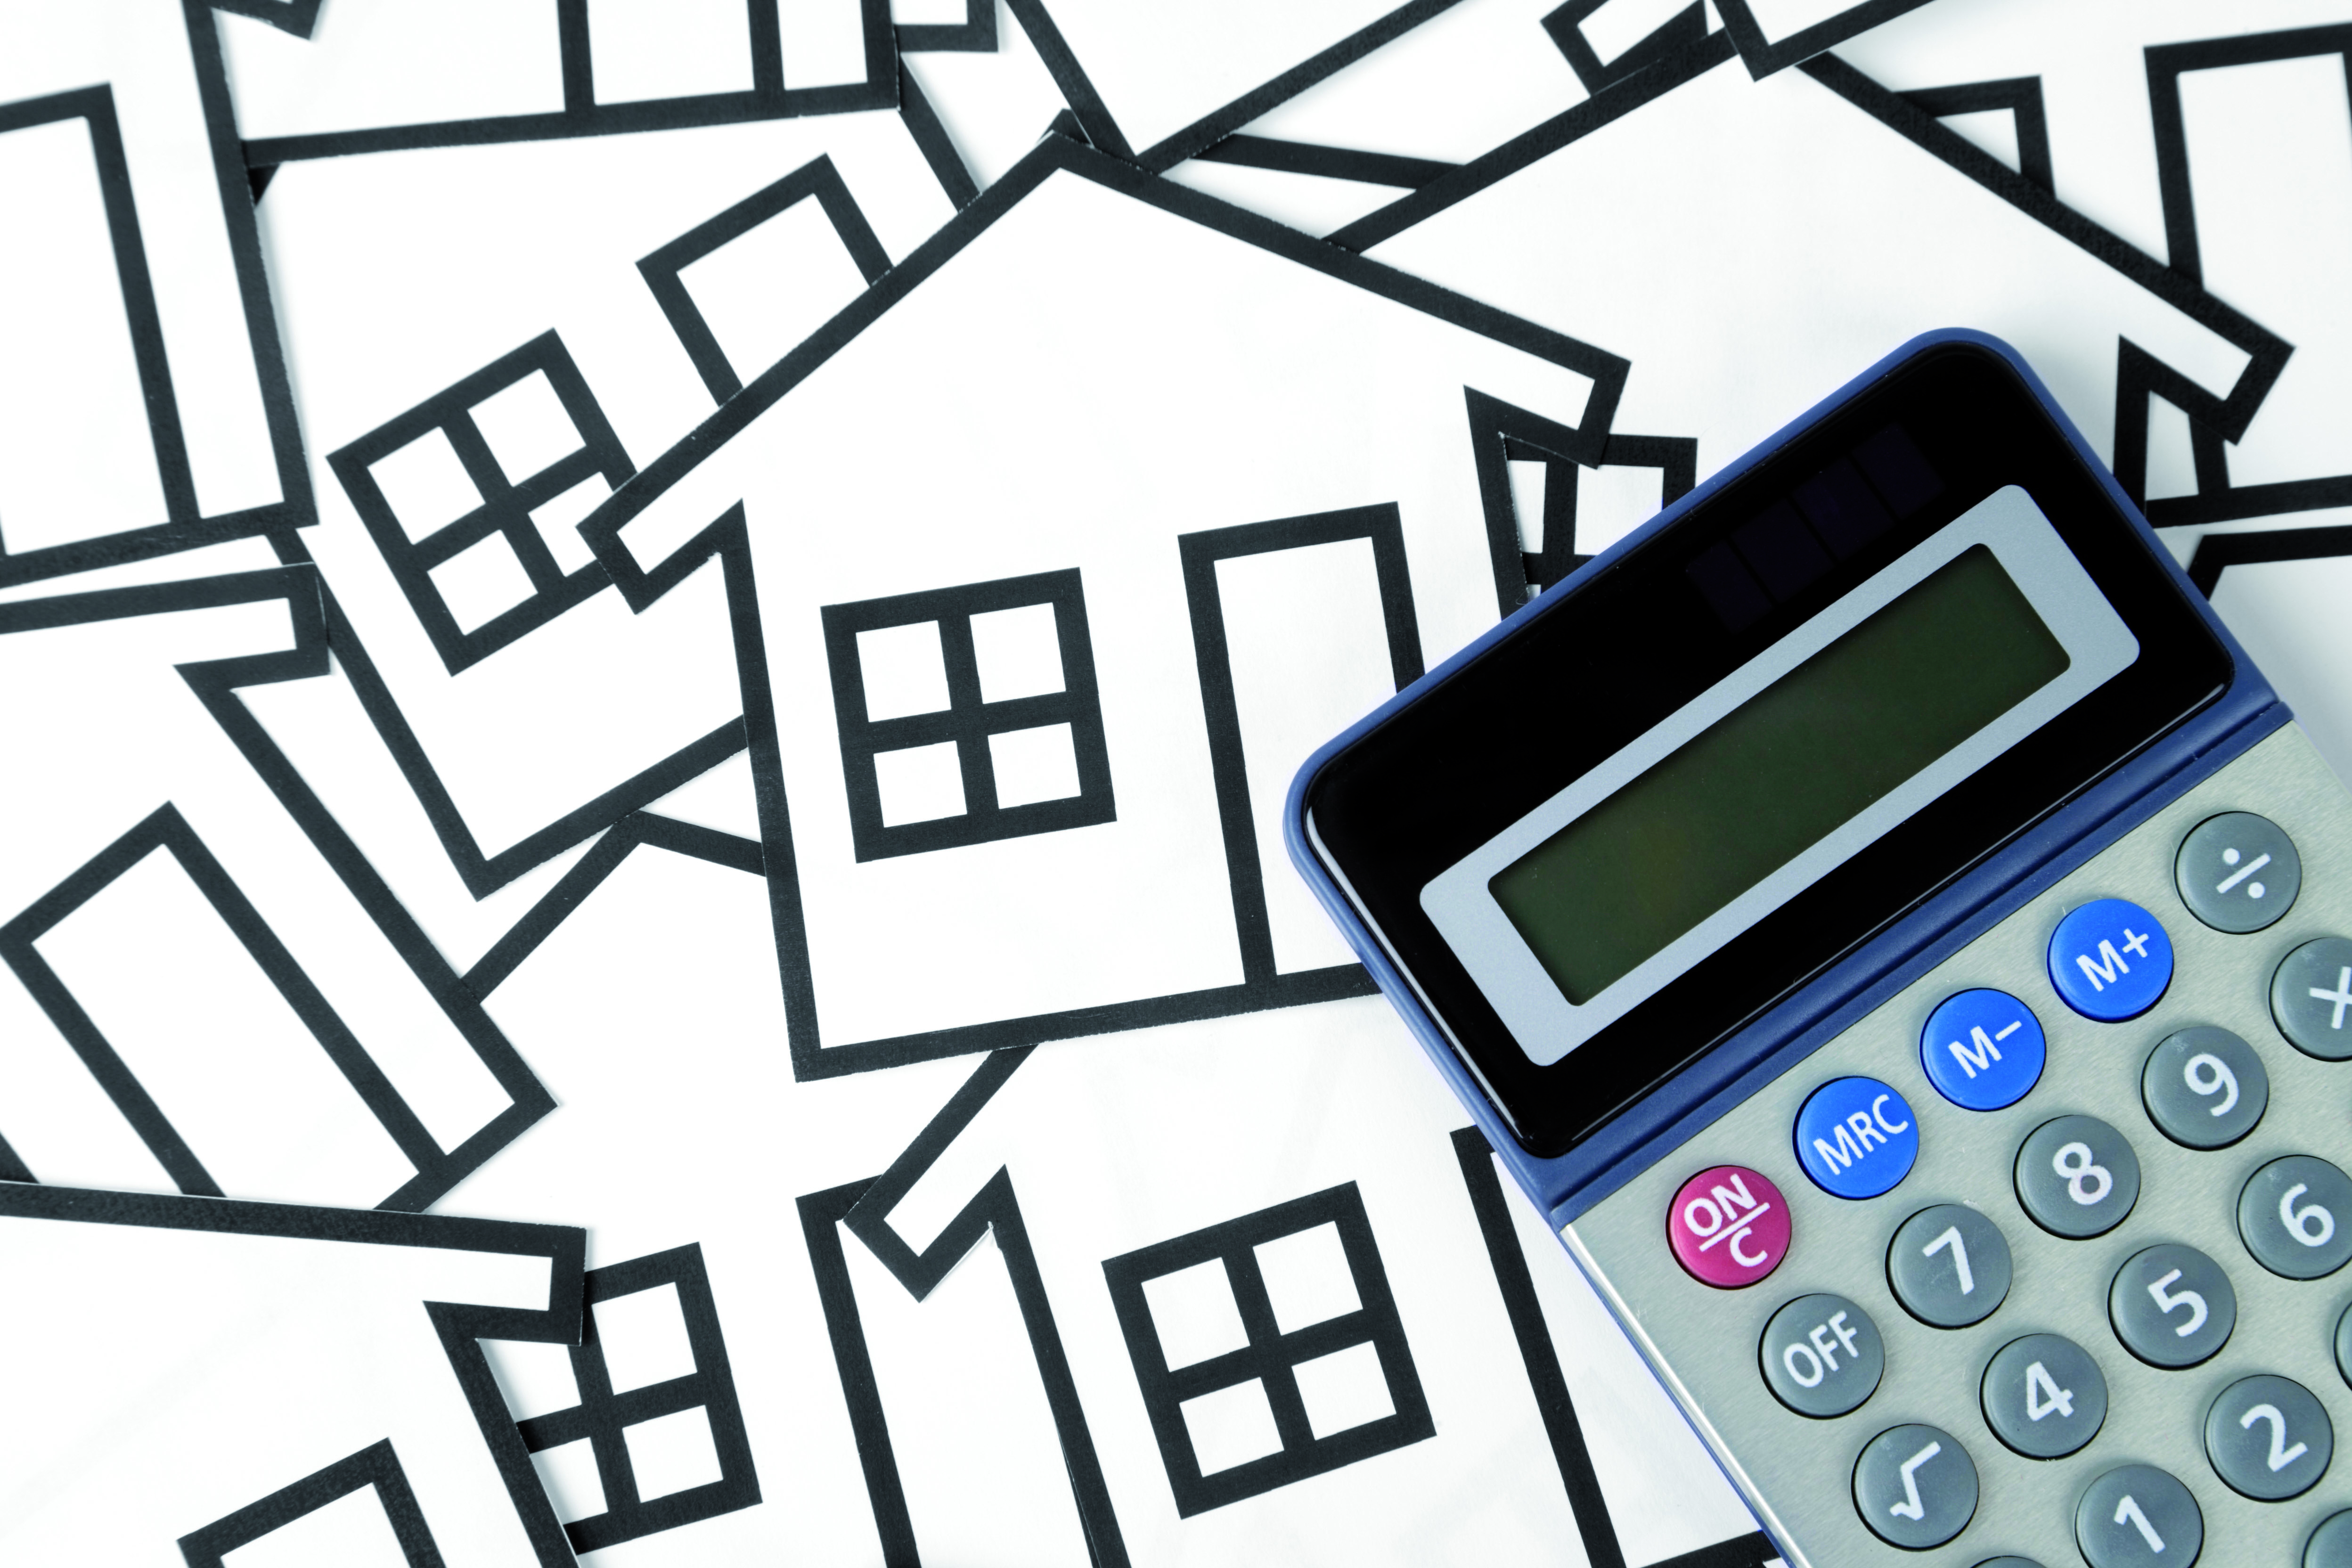 Getting pre-approval for your mortgage